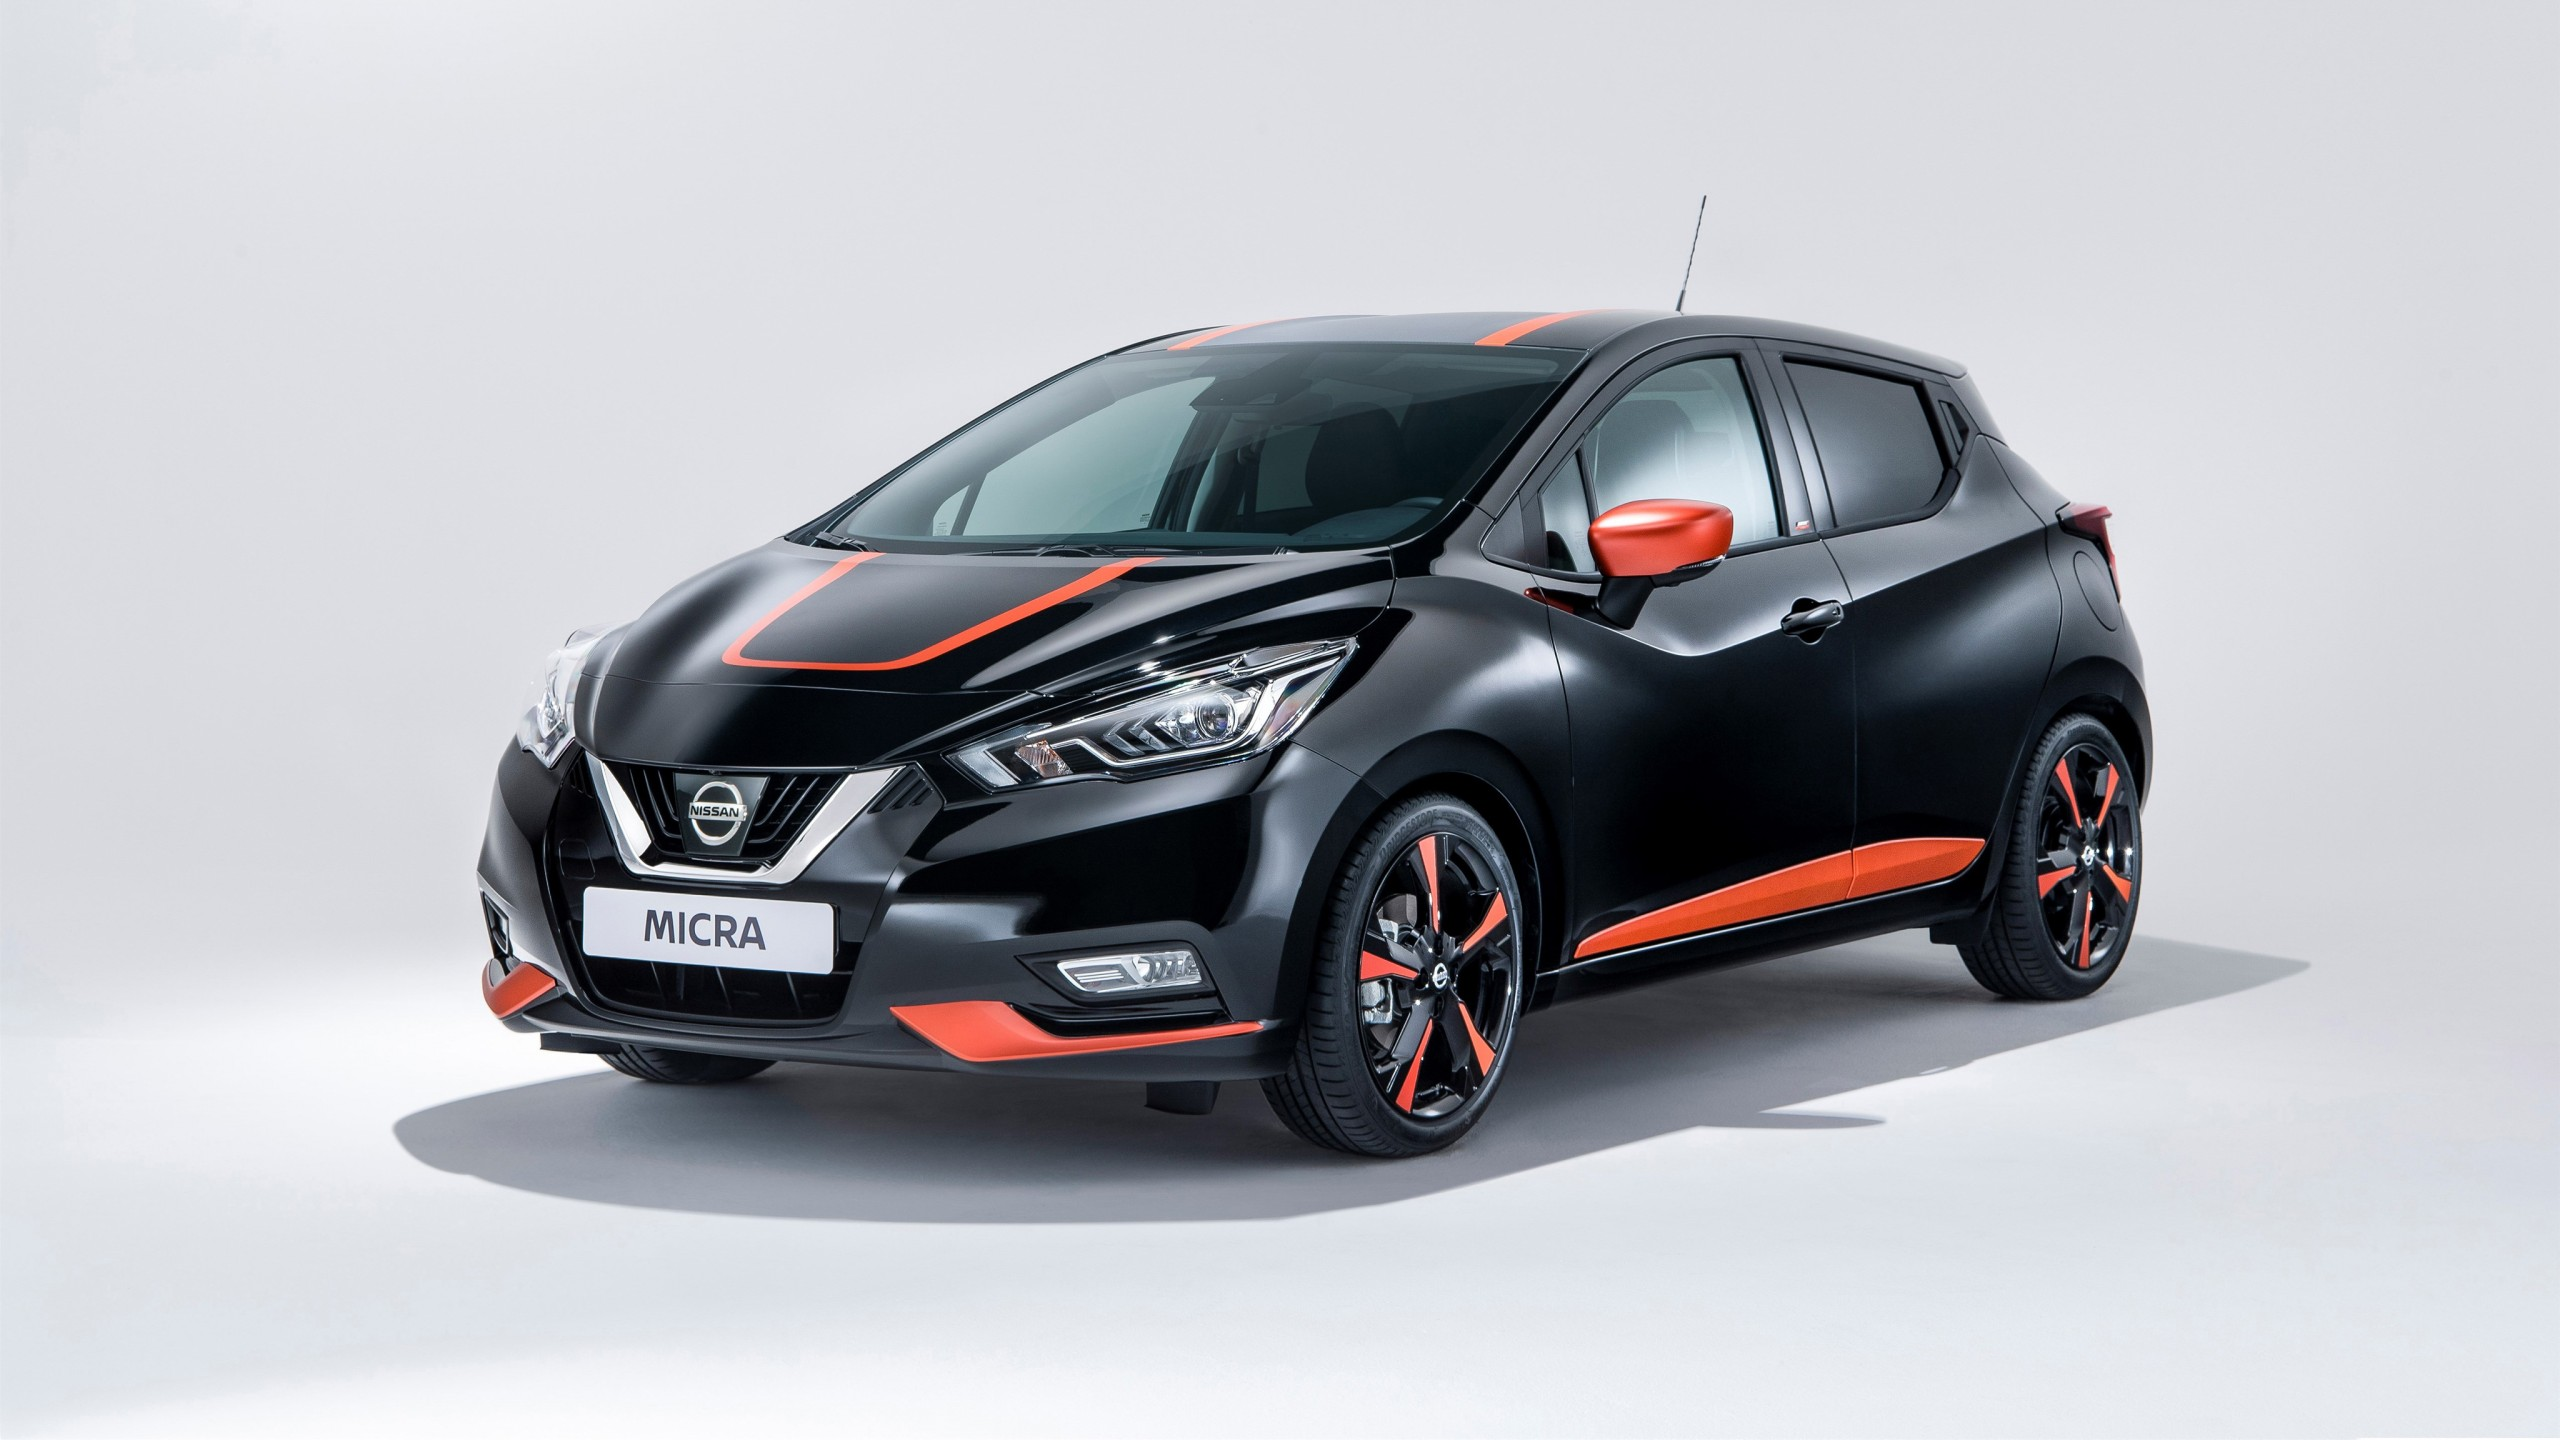 2017 nissan micra bose personal edition wallpaper hd car wallpapers id 7575. Black Bedroom Furniture Sets. Home Design Ideas